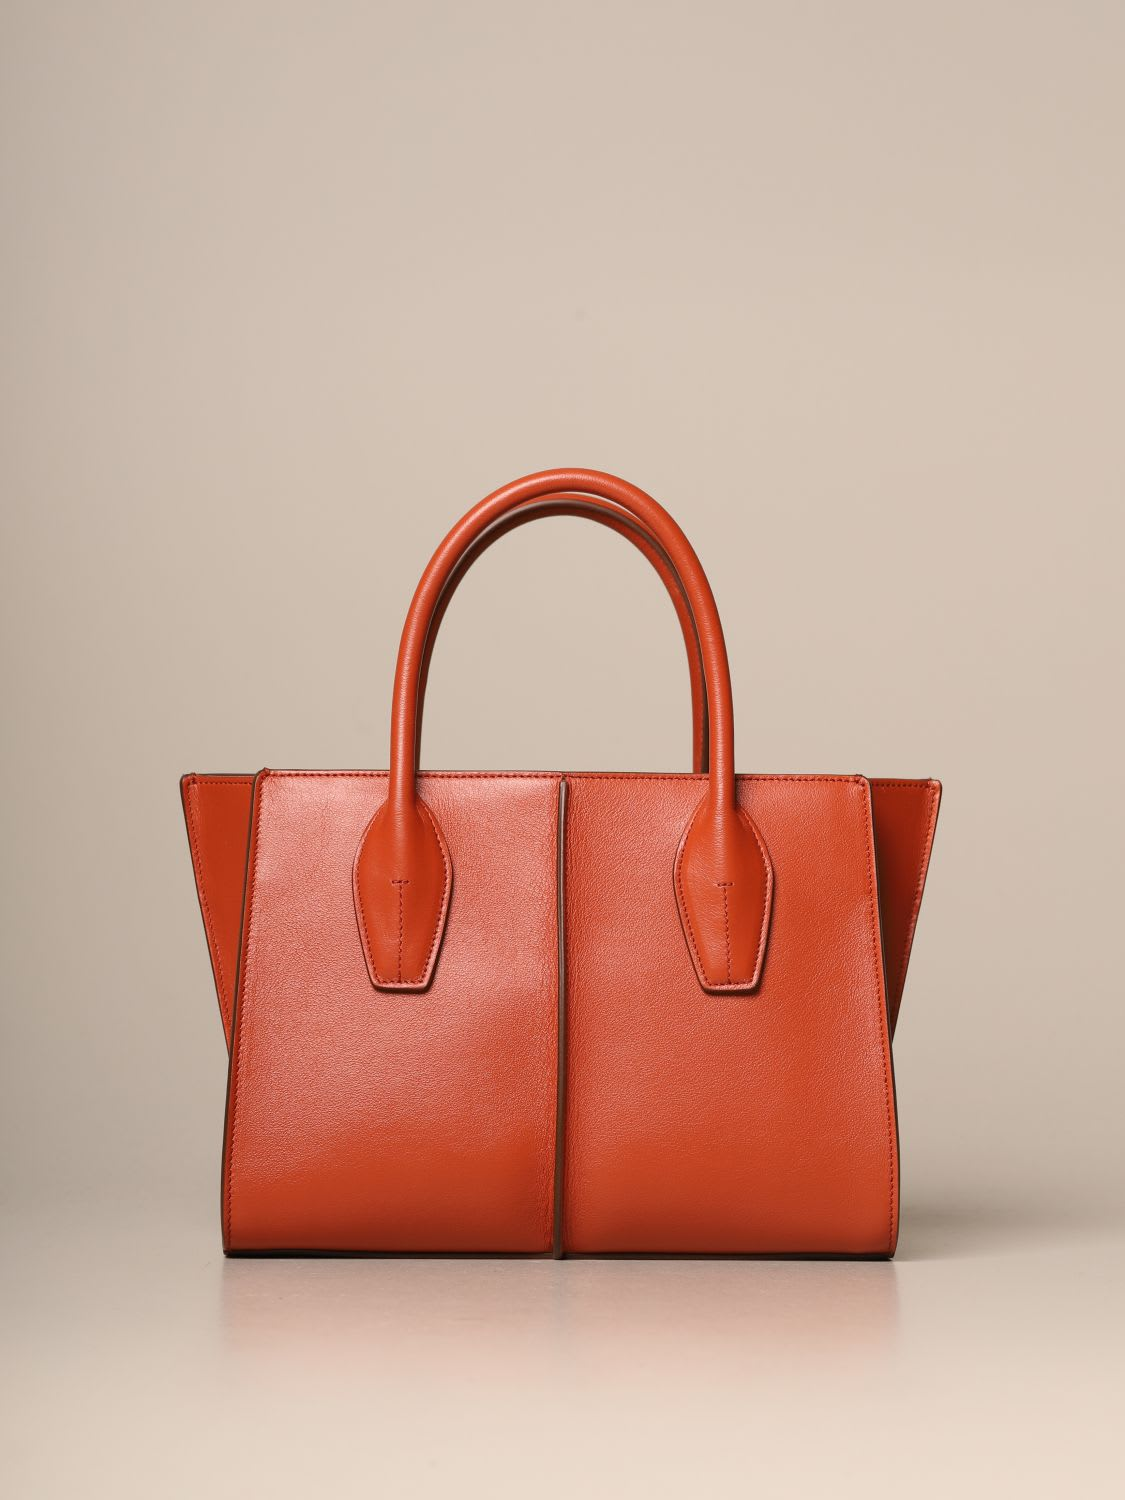 Tods Tote Bags Tods Shopping Bag In Leather With Shoulder Strap